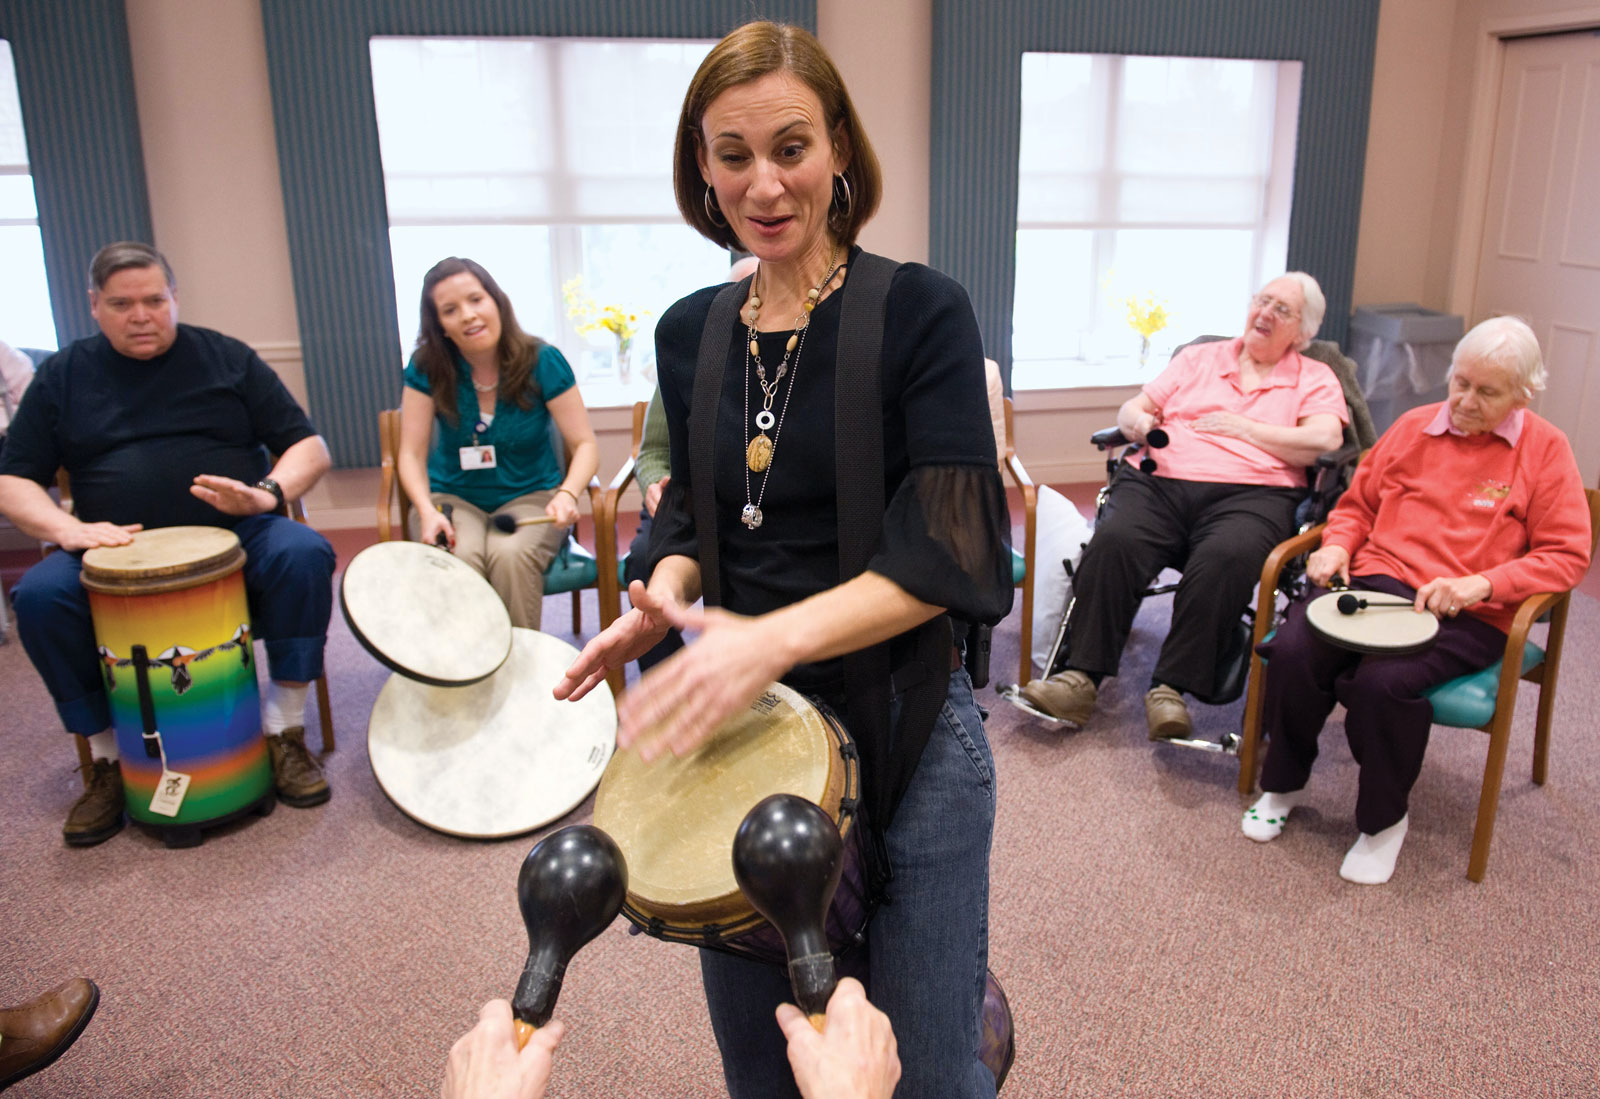 woman (music therapist) playing drums in a circle of older people playing other instruments like drums and shakers